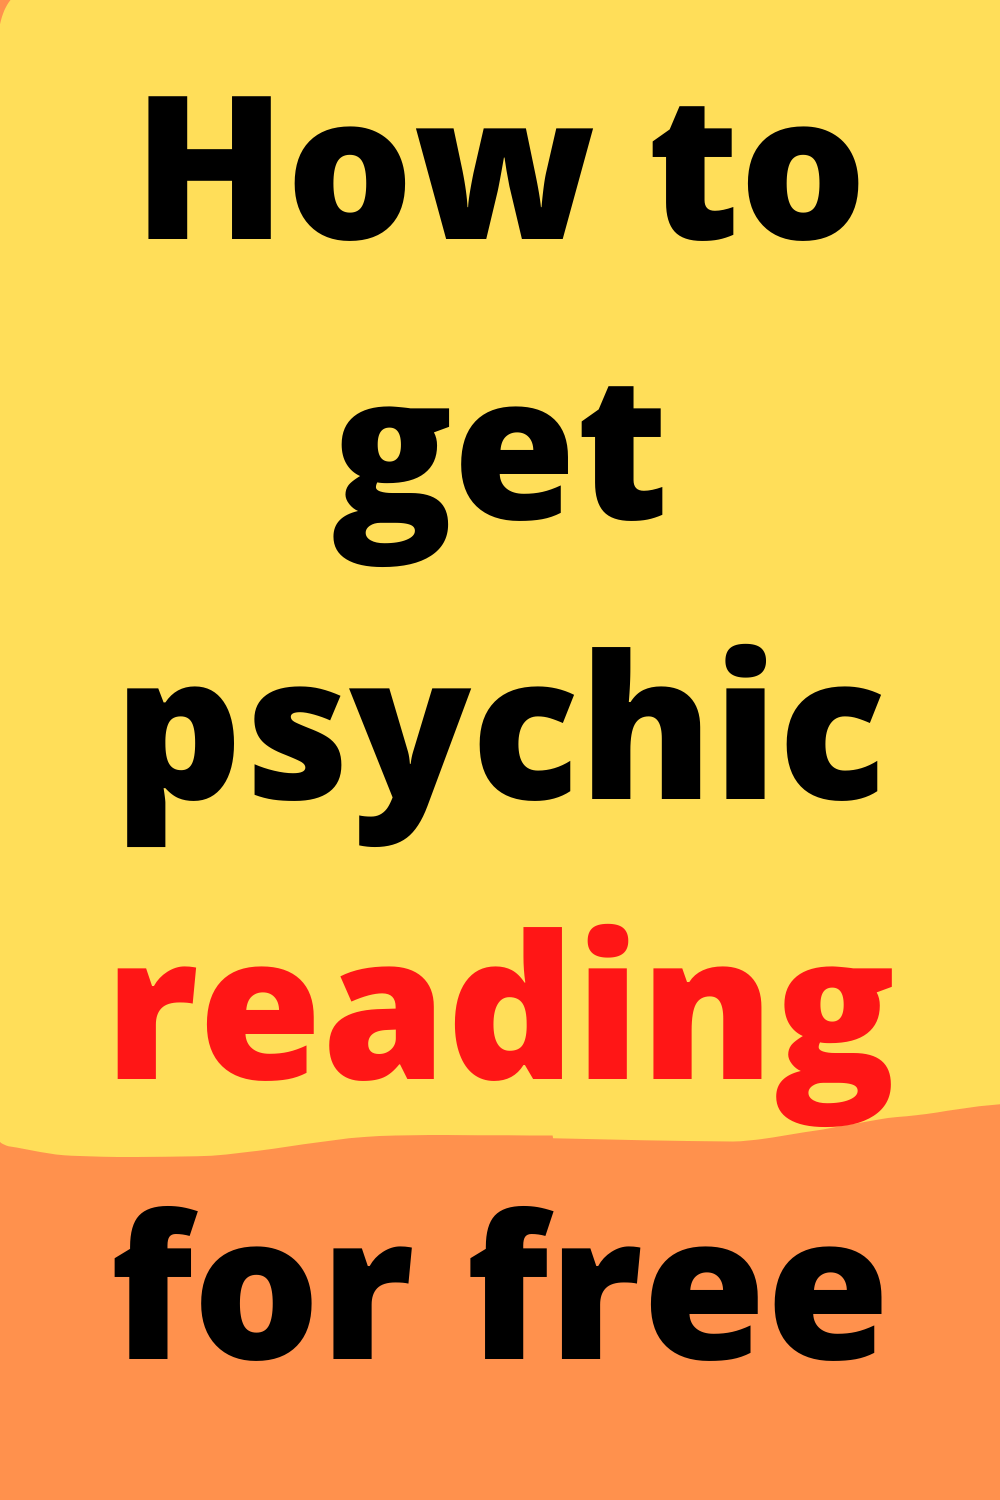 Love reading chat psychic Free psychic